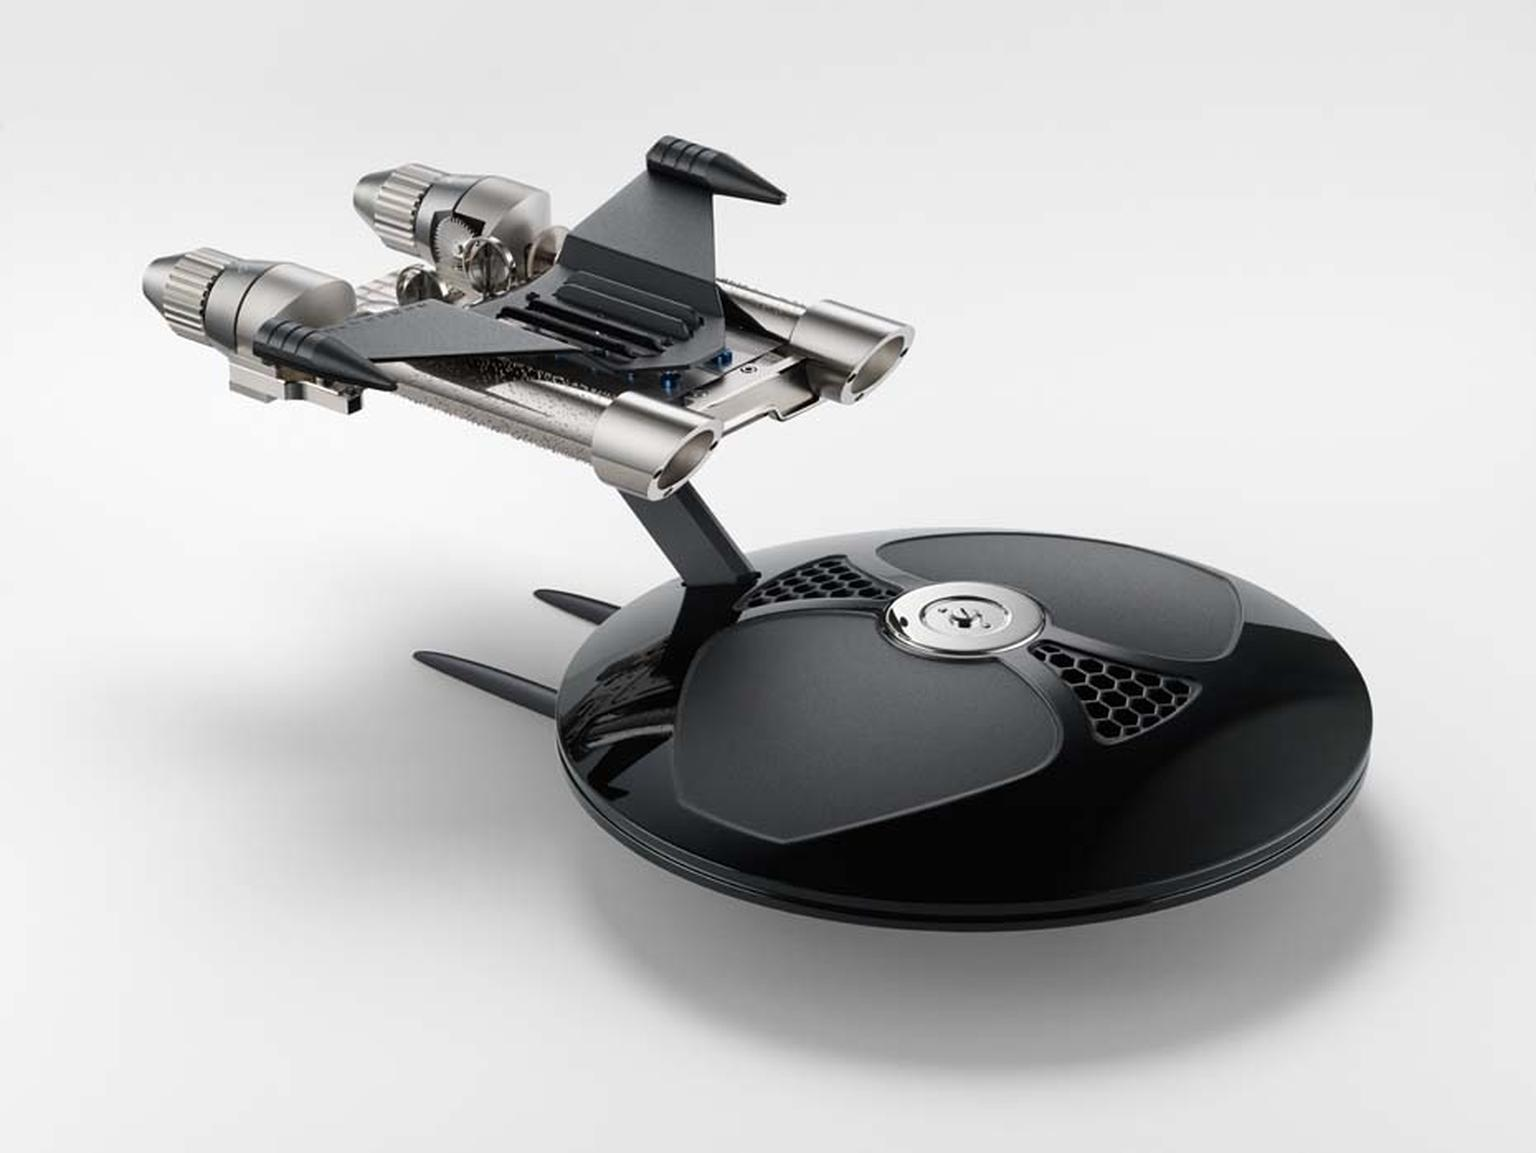 MB&F's MusicMachine2 is available in a limited edition of 33 pieces in white and 66 pieces in black.